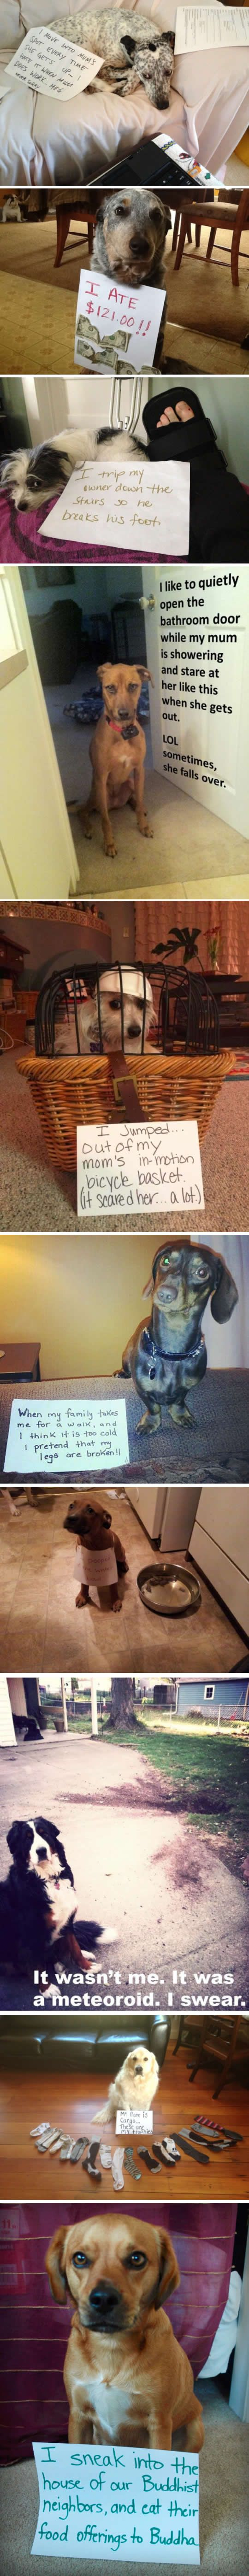 NEW!!!! Best of Dog Shaming !!!!: